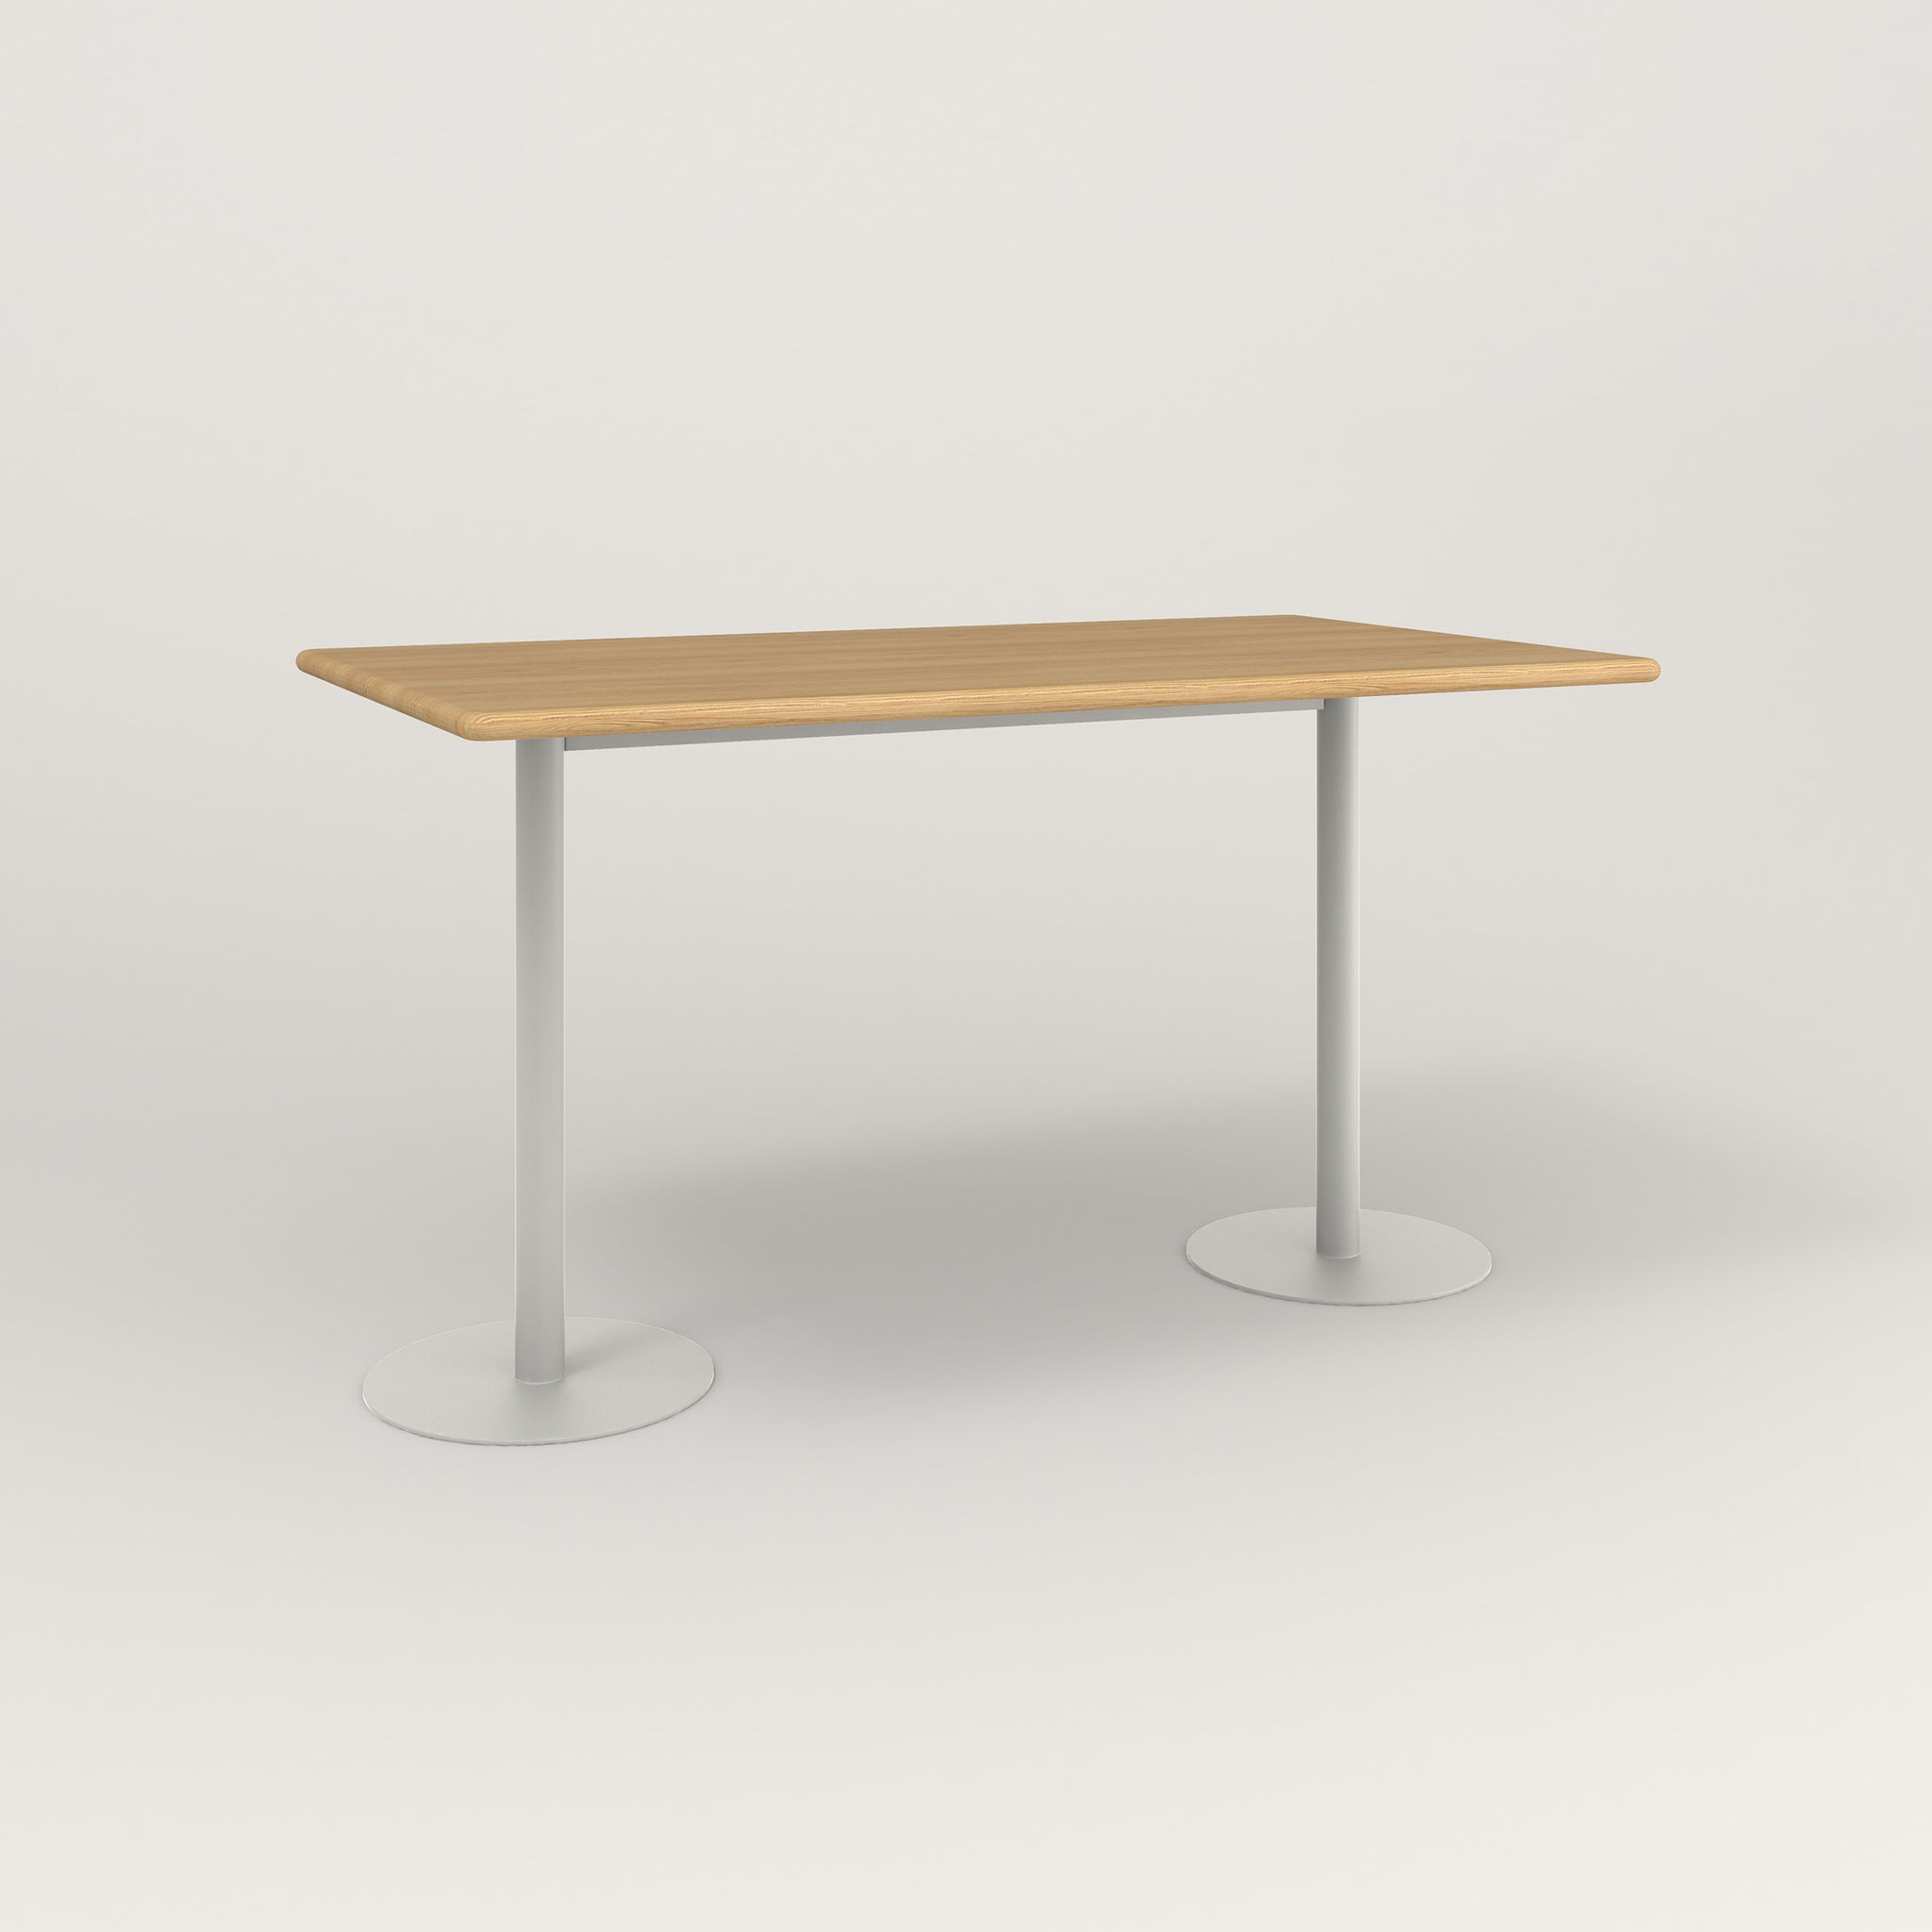 RAD Cafe Table, Rectangular Weighted Base T Leg in solid white oak and white powder coat.